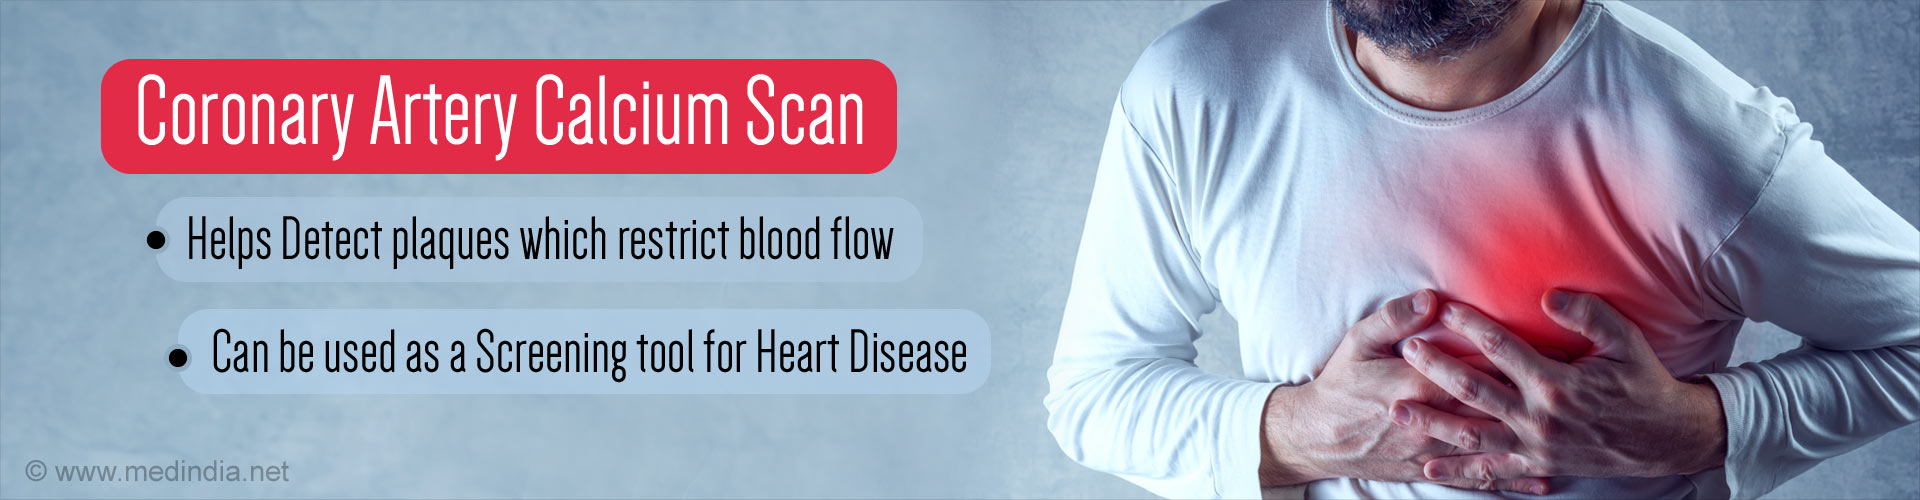 Could Coronary Artery Calcium Scan Be Useful In Screening Heart Disease?